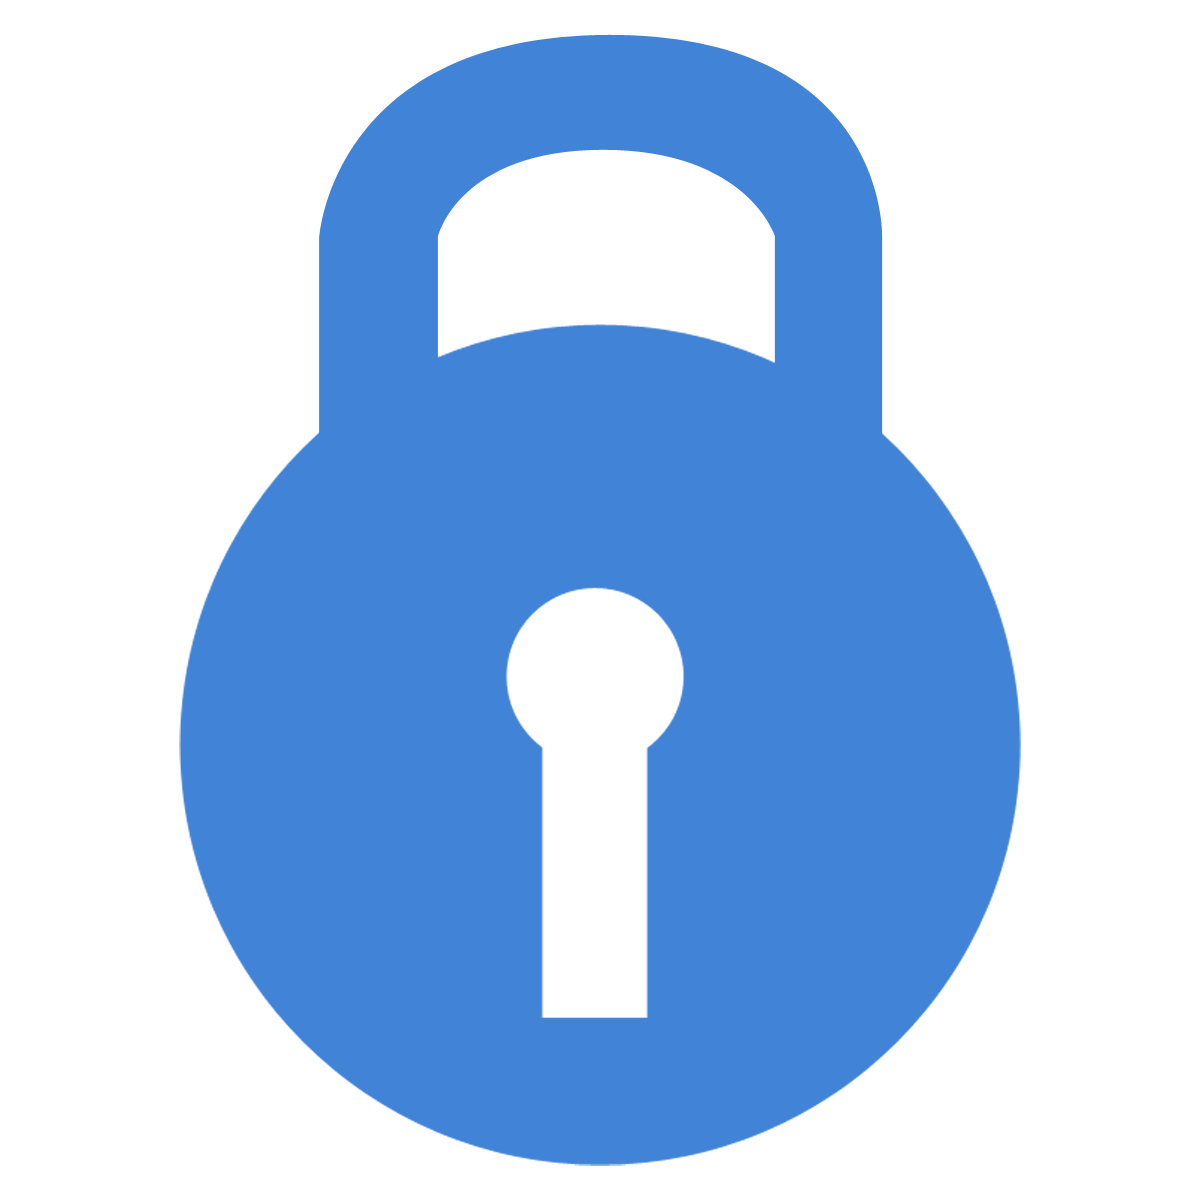 Lock clipart blue. Information security microgenesis business